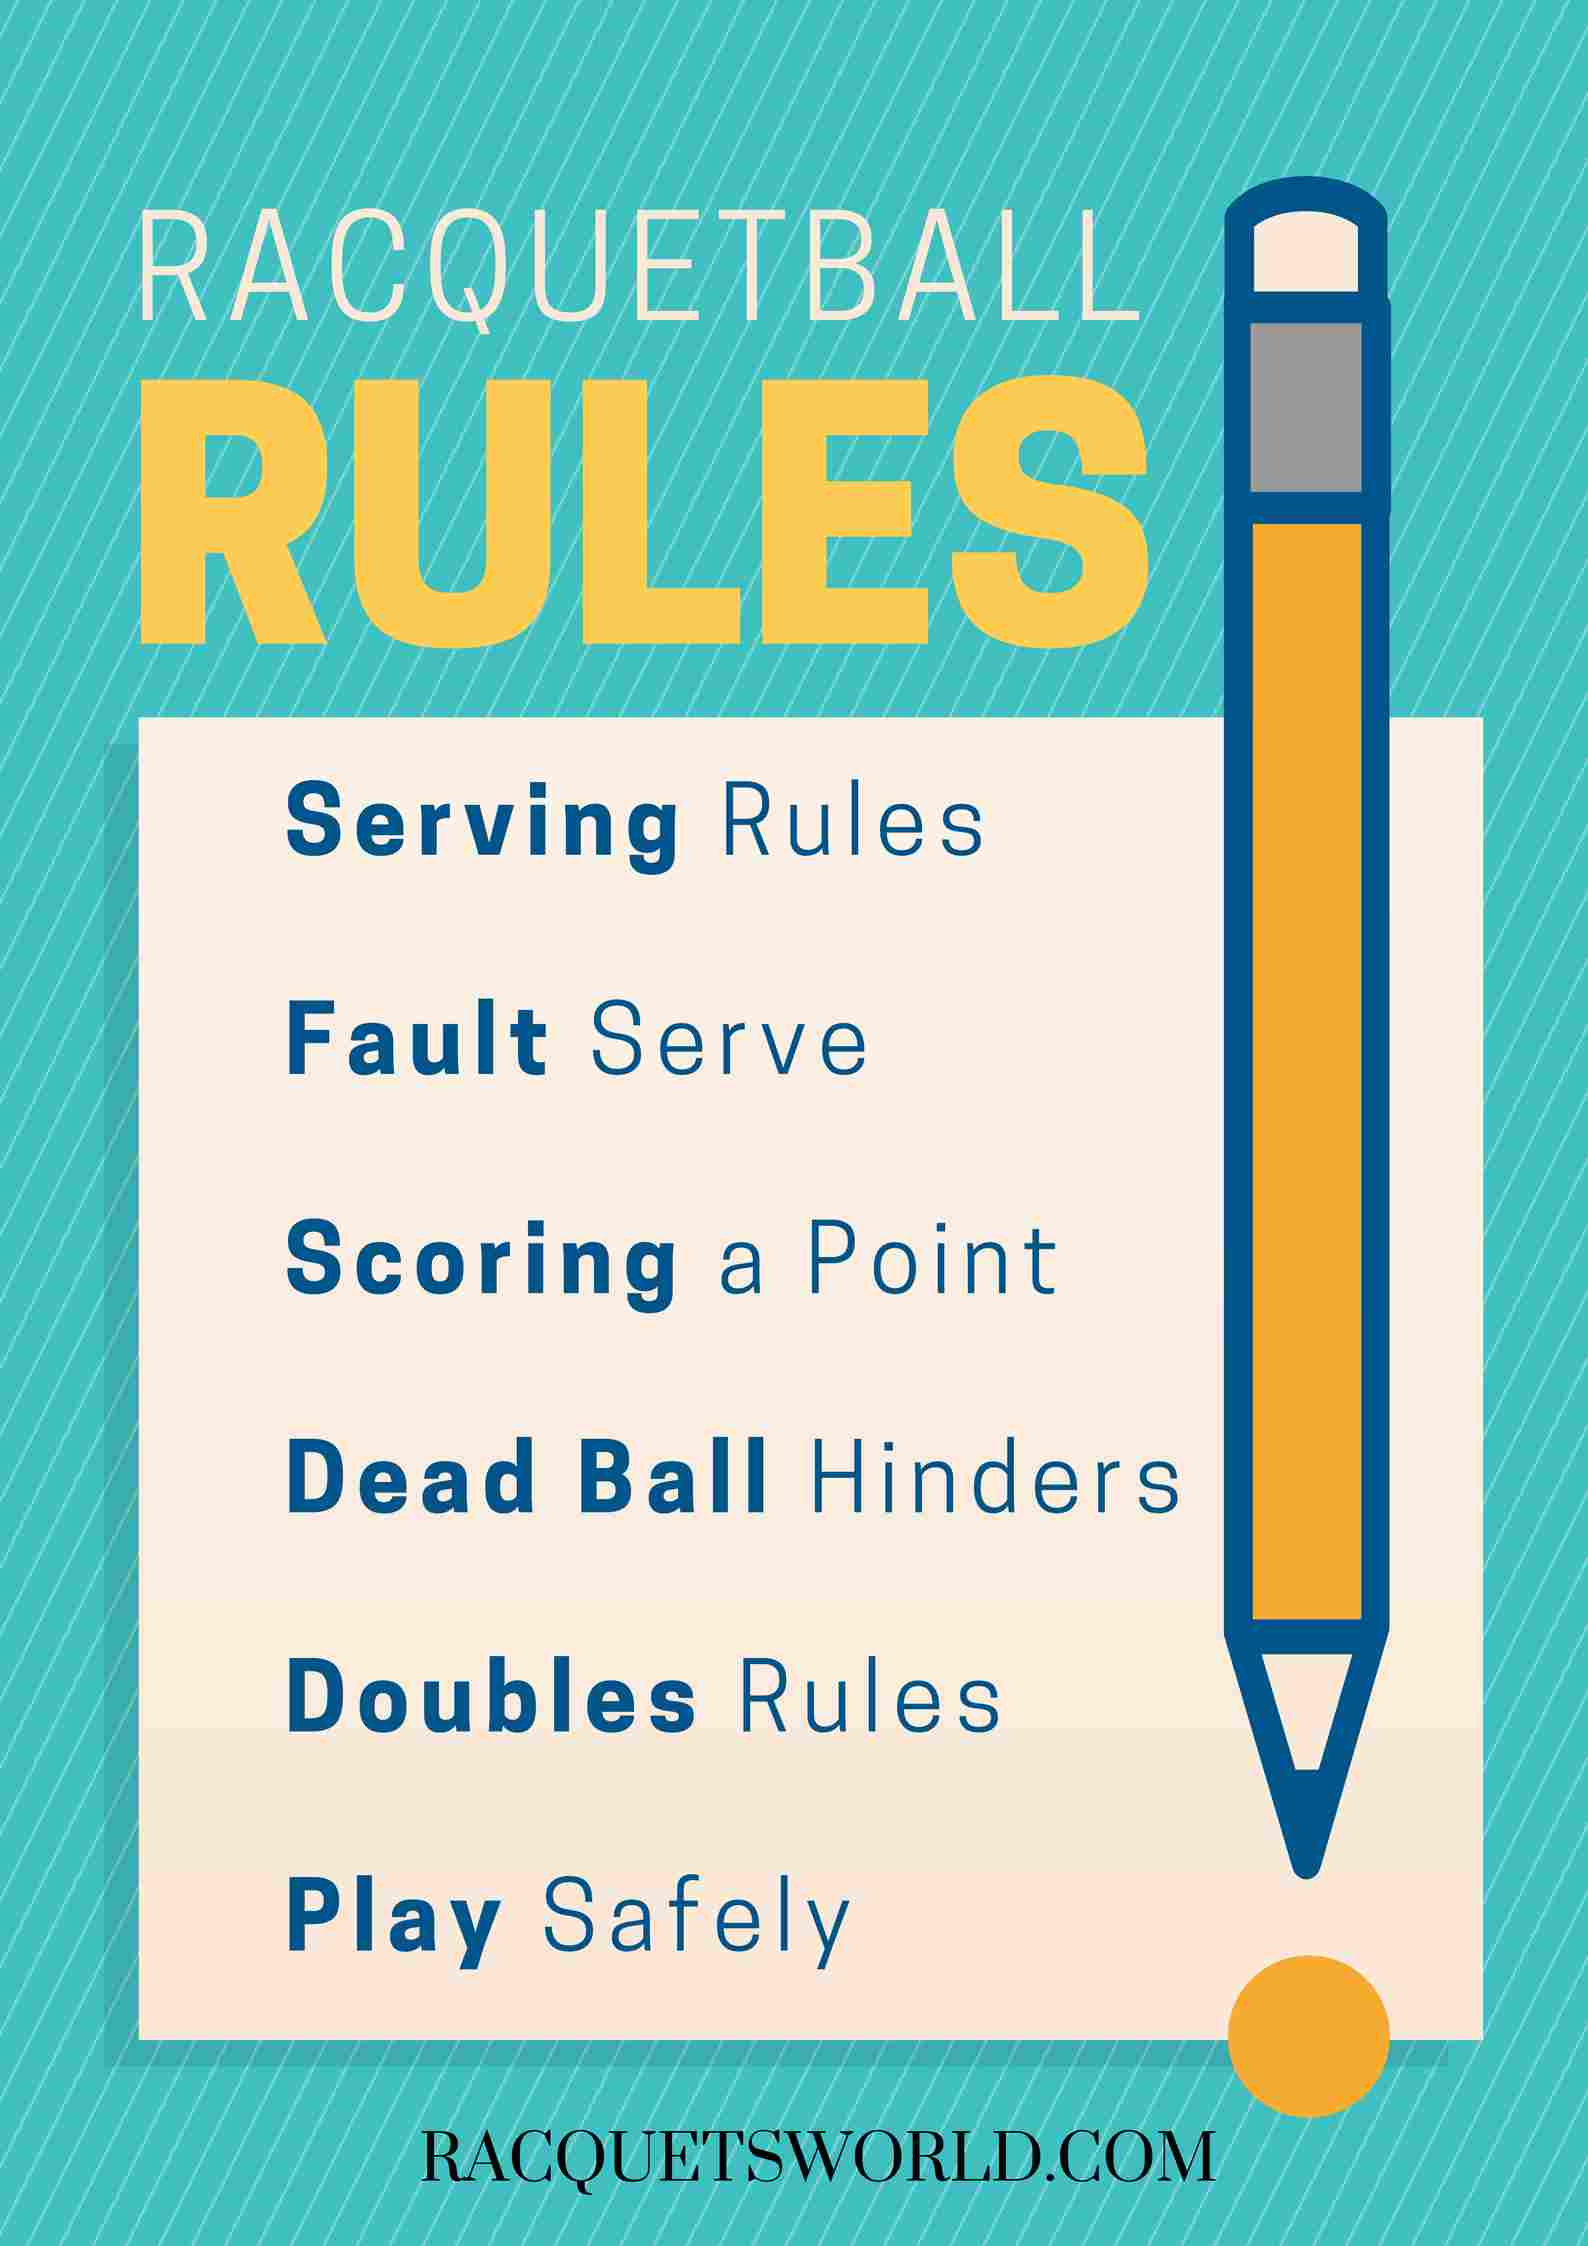 How to play racquetball- All Basic Rules regarding single serving rules, doubles rules, fault serve, scoring etc